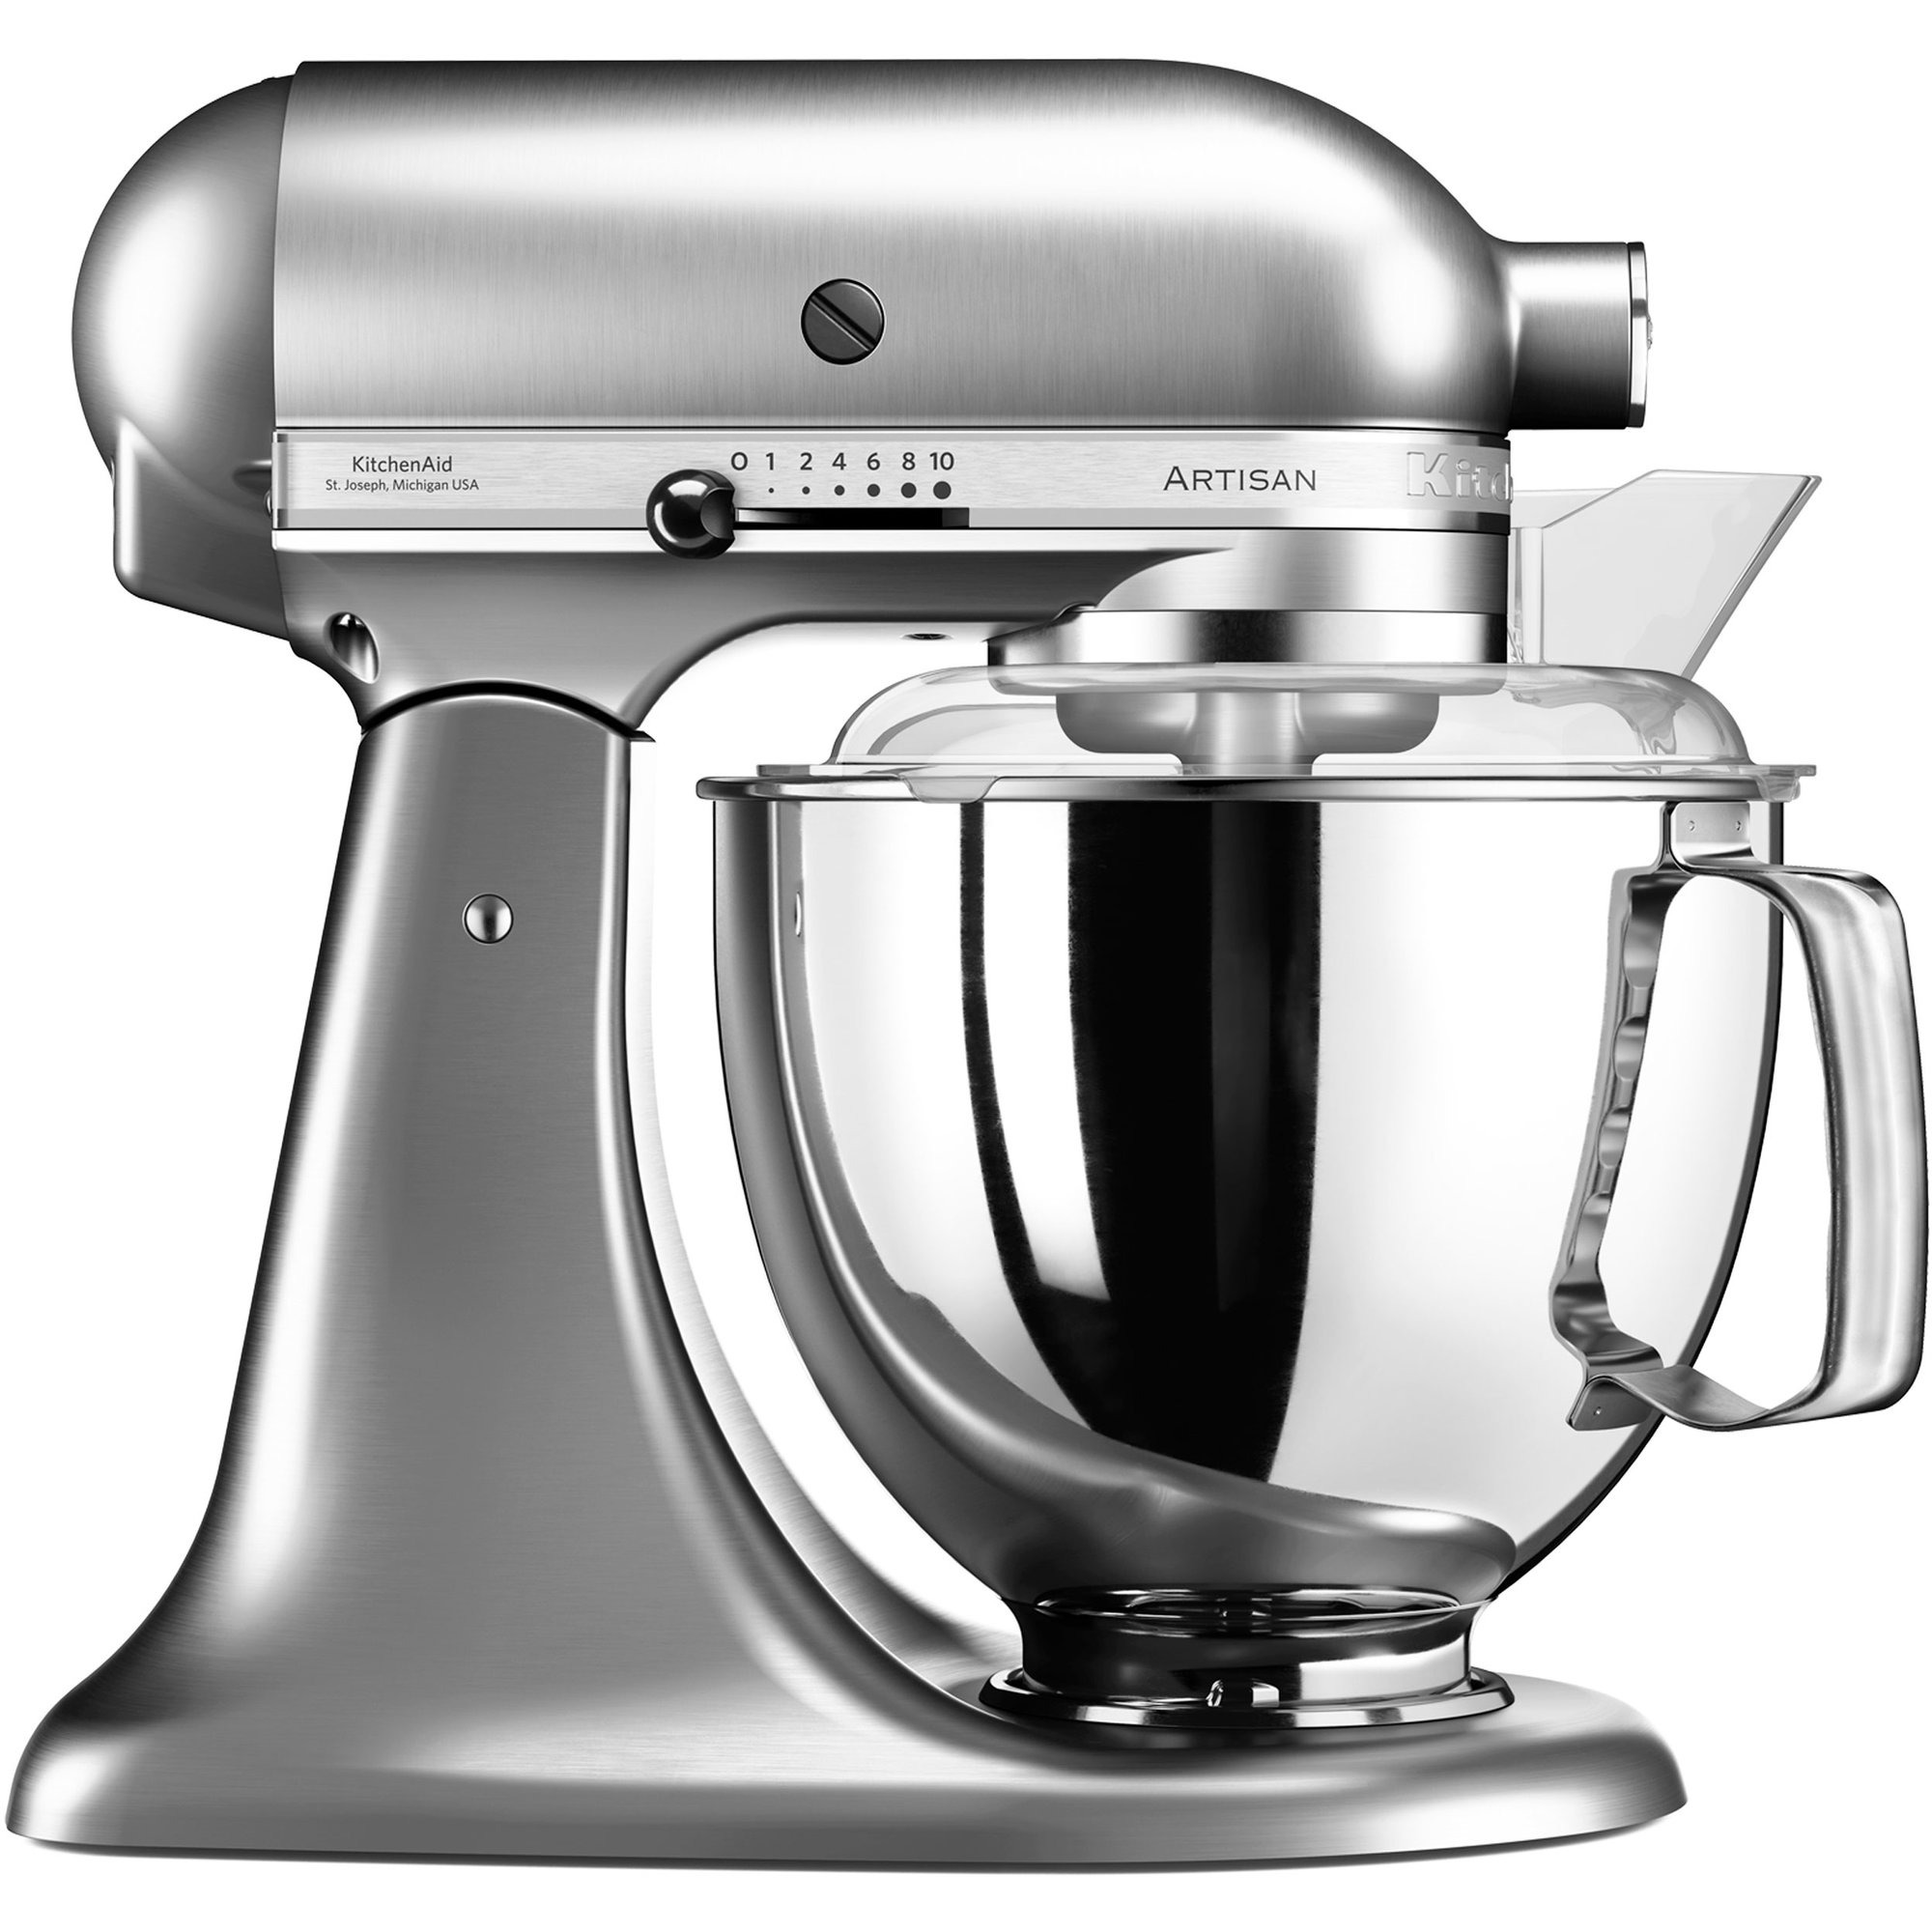 KitchenAid Artisan KSM175PSENK Borstad Nickel